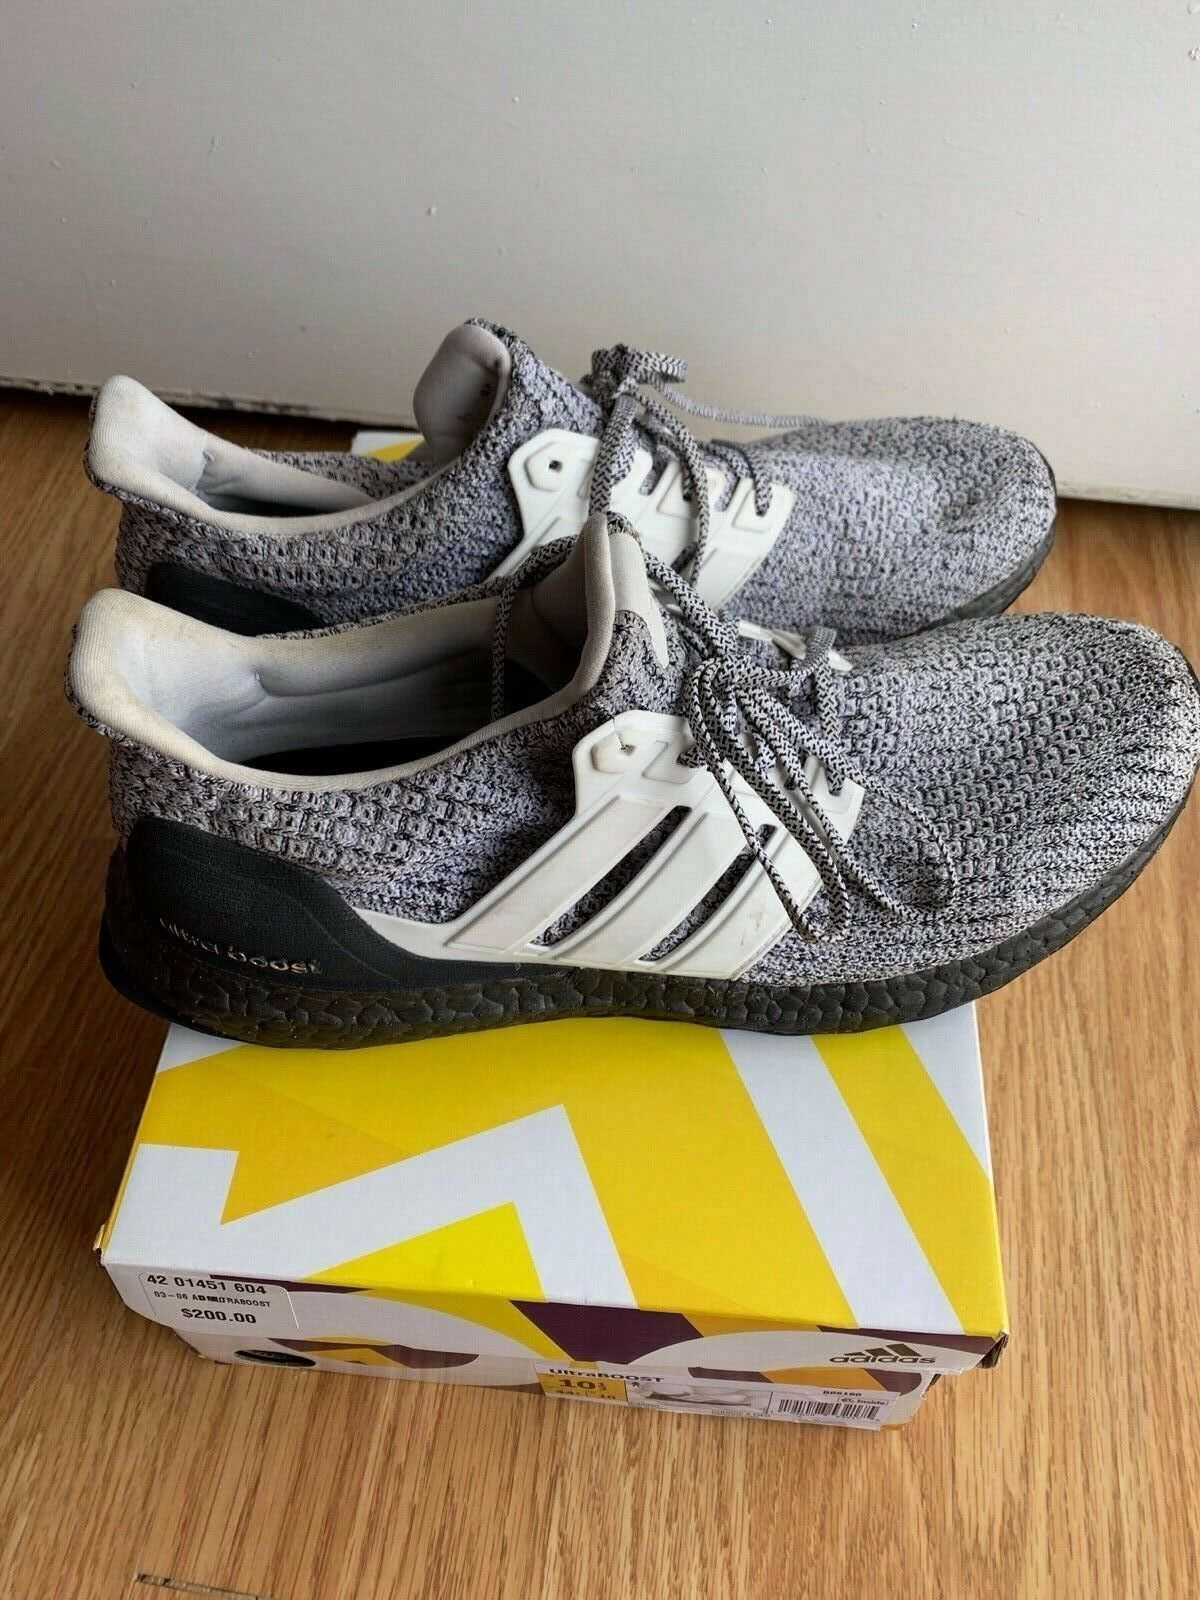 c06a3b83dccb1 Adidas Ultra BOOST 4.0 Oreo BB6180 Cookies and Cream LTD Men s Size 10.5 US